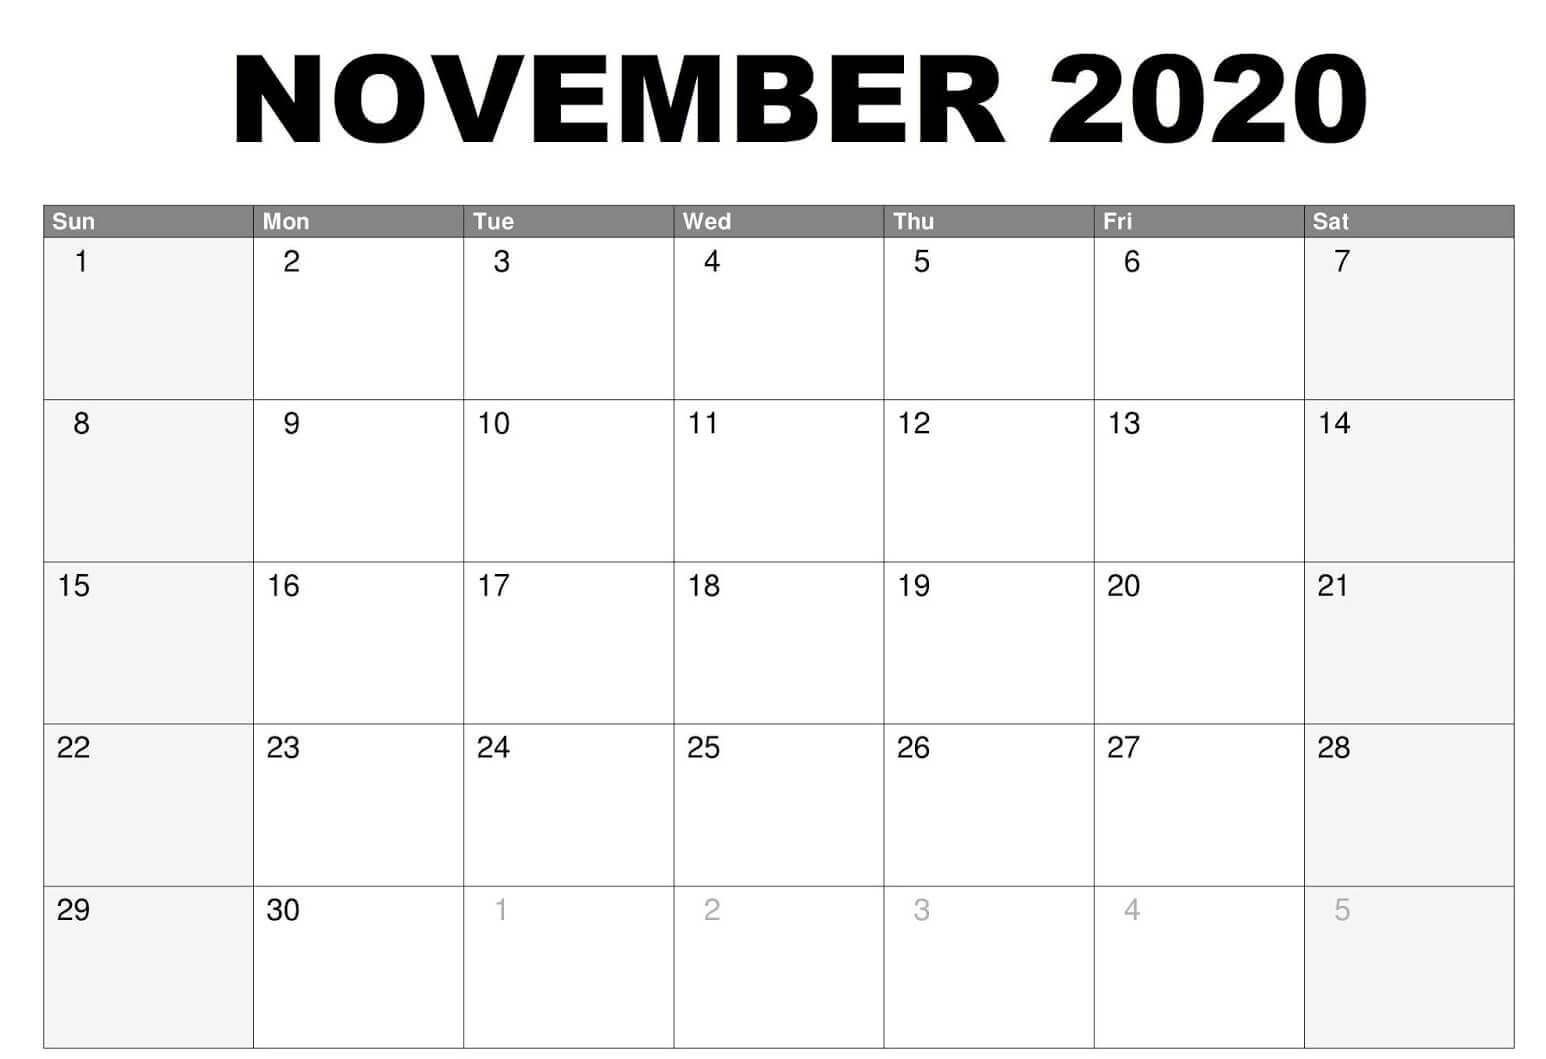 Fillable November 2020 Calendar Printable